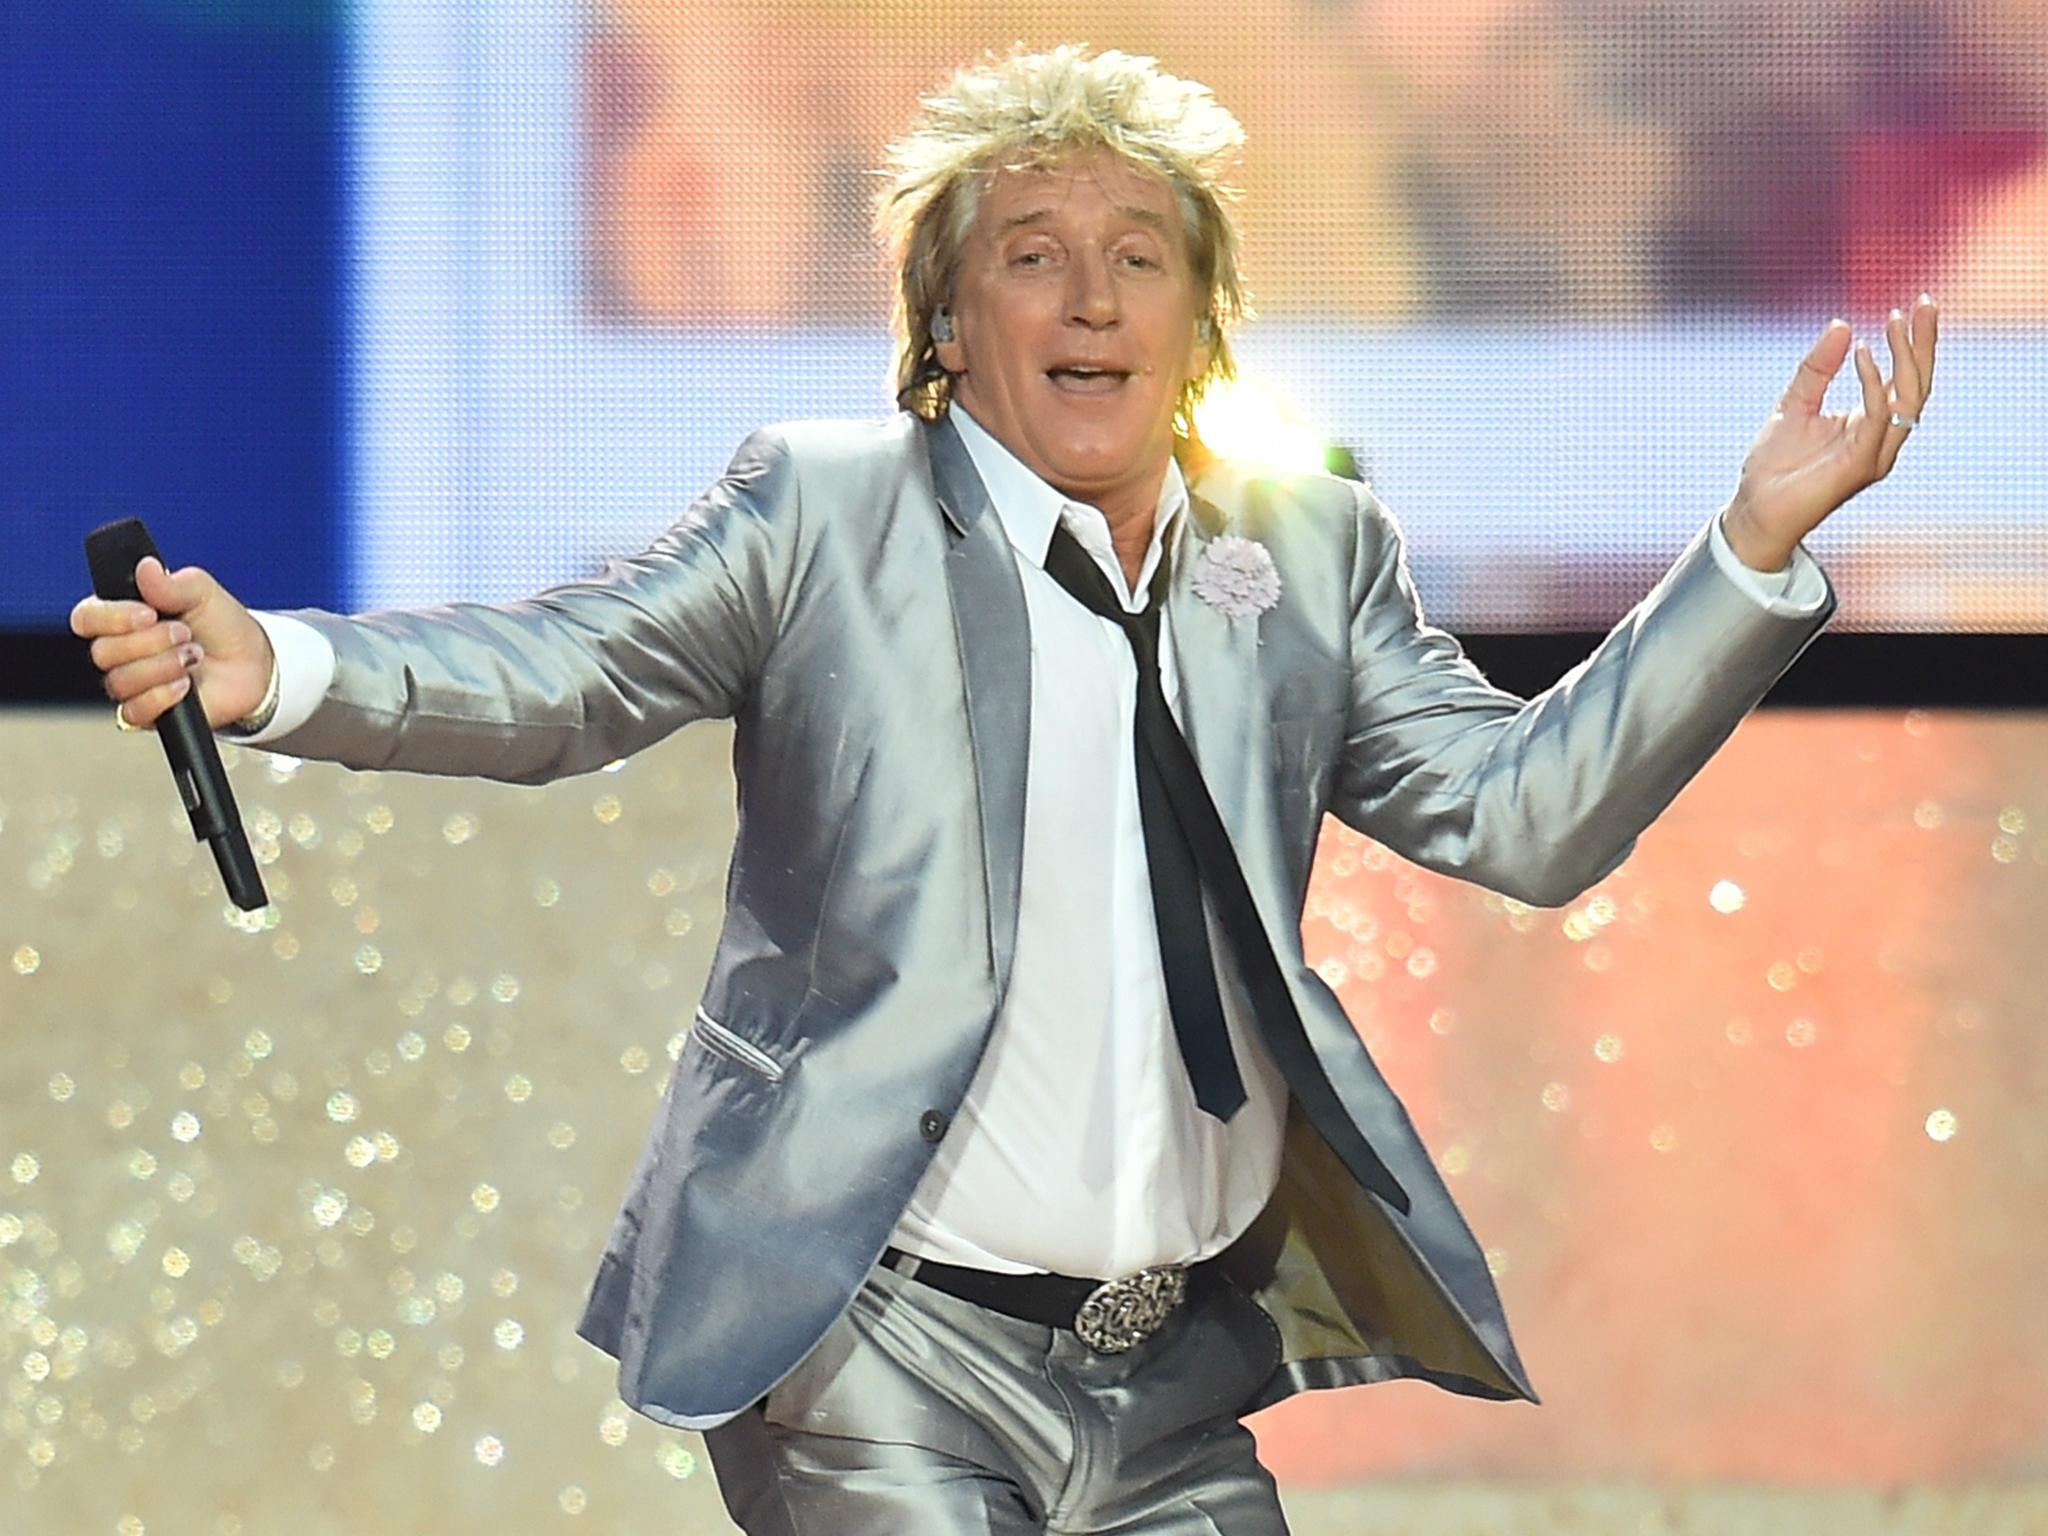 British Legendary Rock Singer Rod Stewart performing at VMA 2017